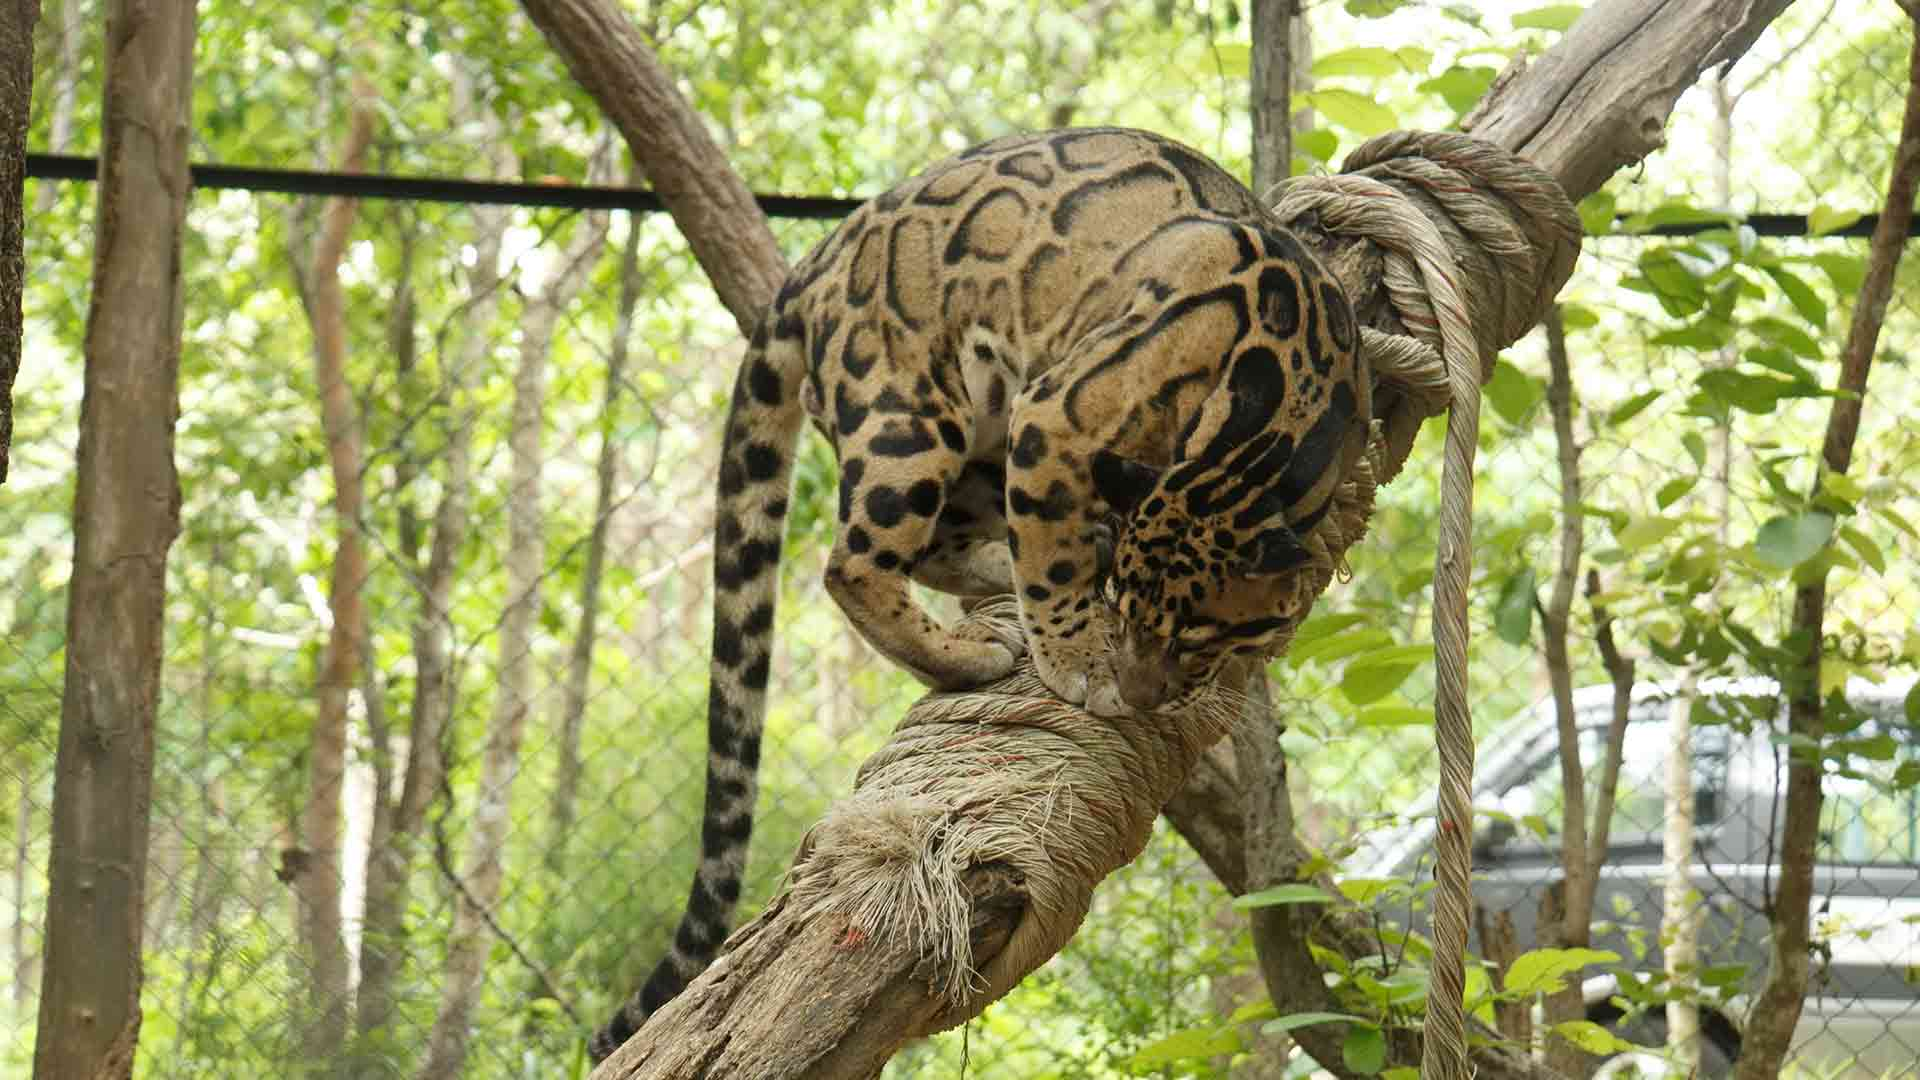 Clouded Leopards are expert climbers. They can climb down trees headfirst and even climb upside down.